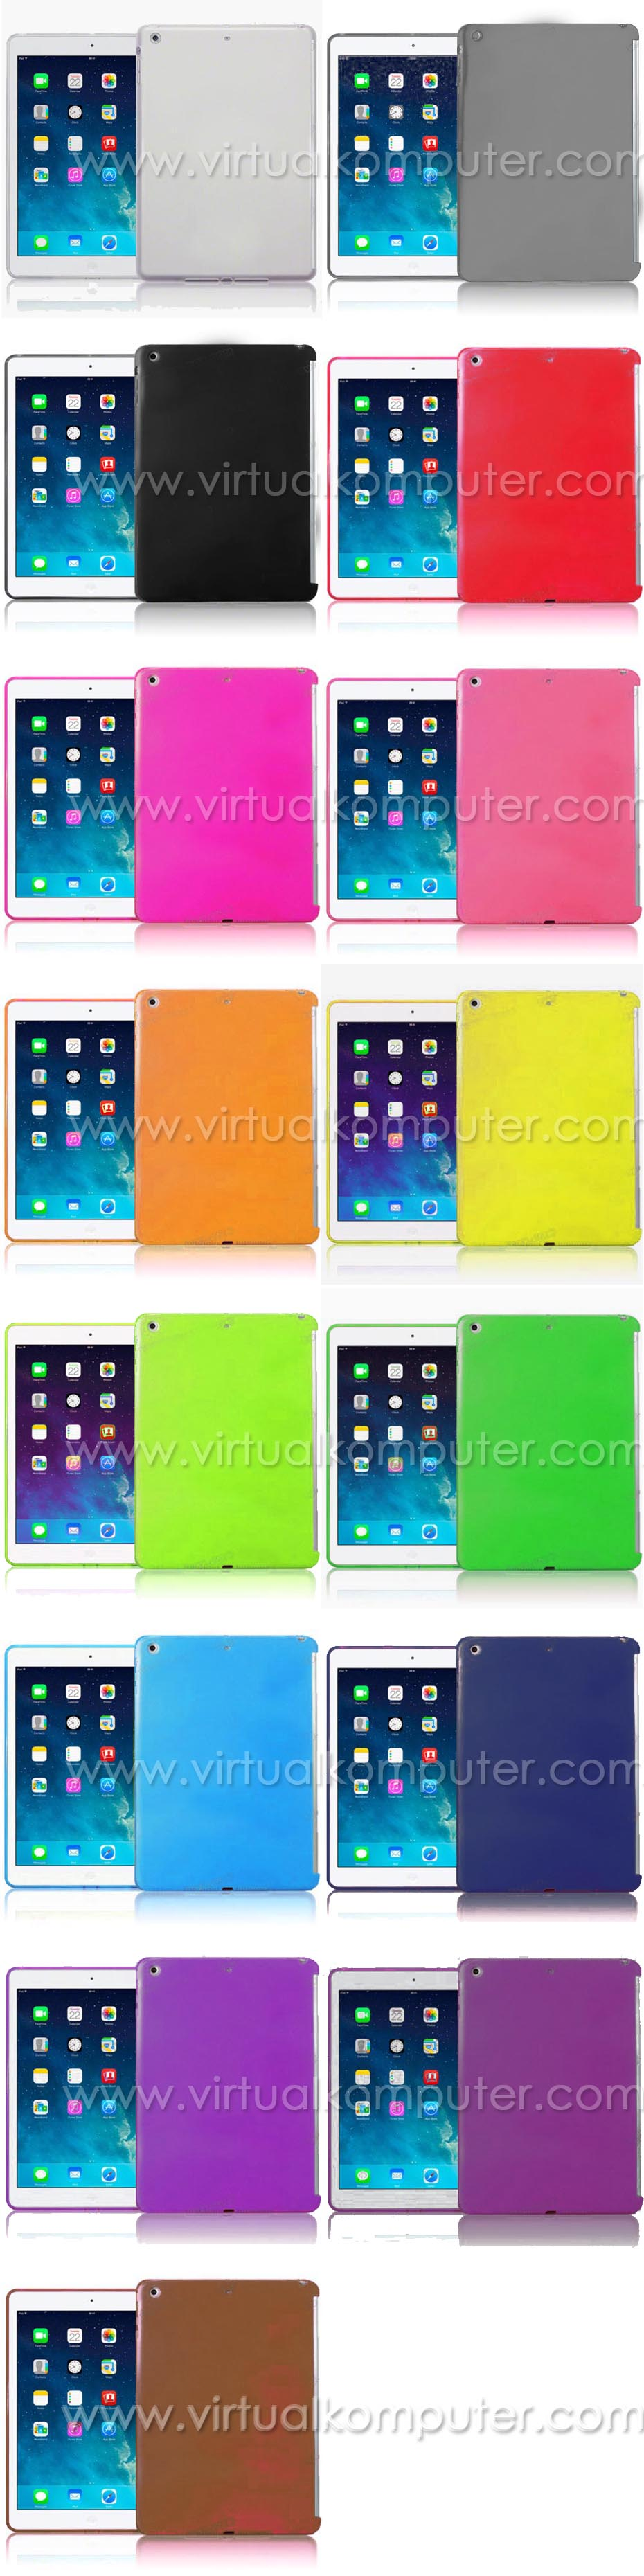 Softcase for iPad Air Overview